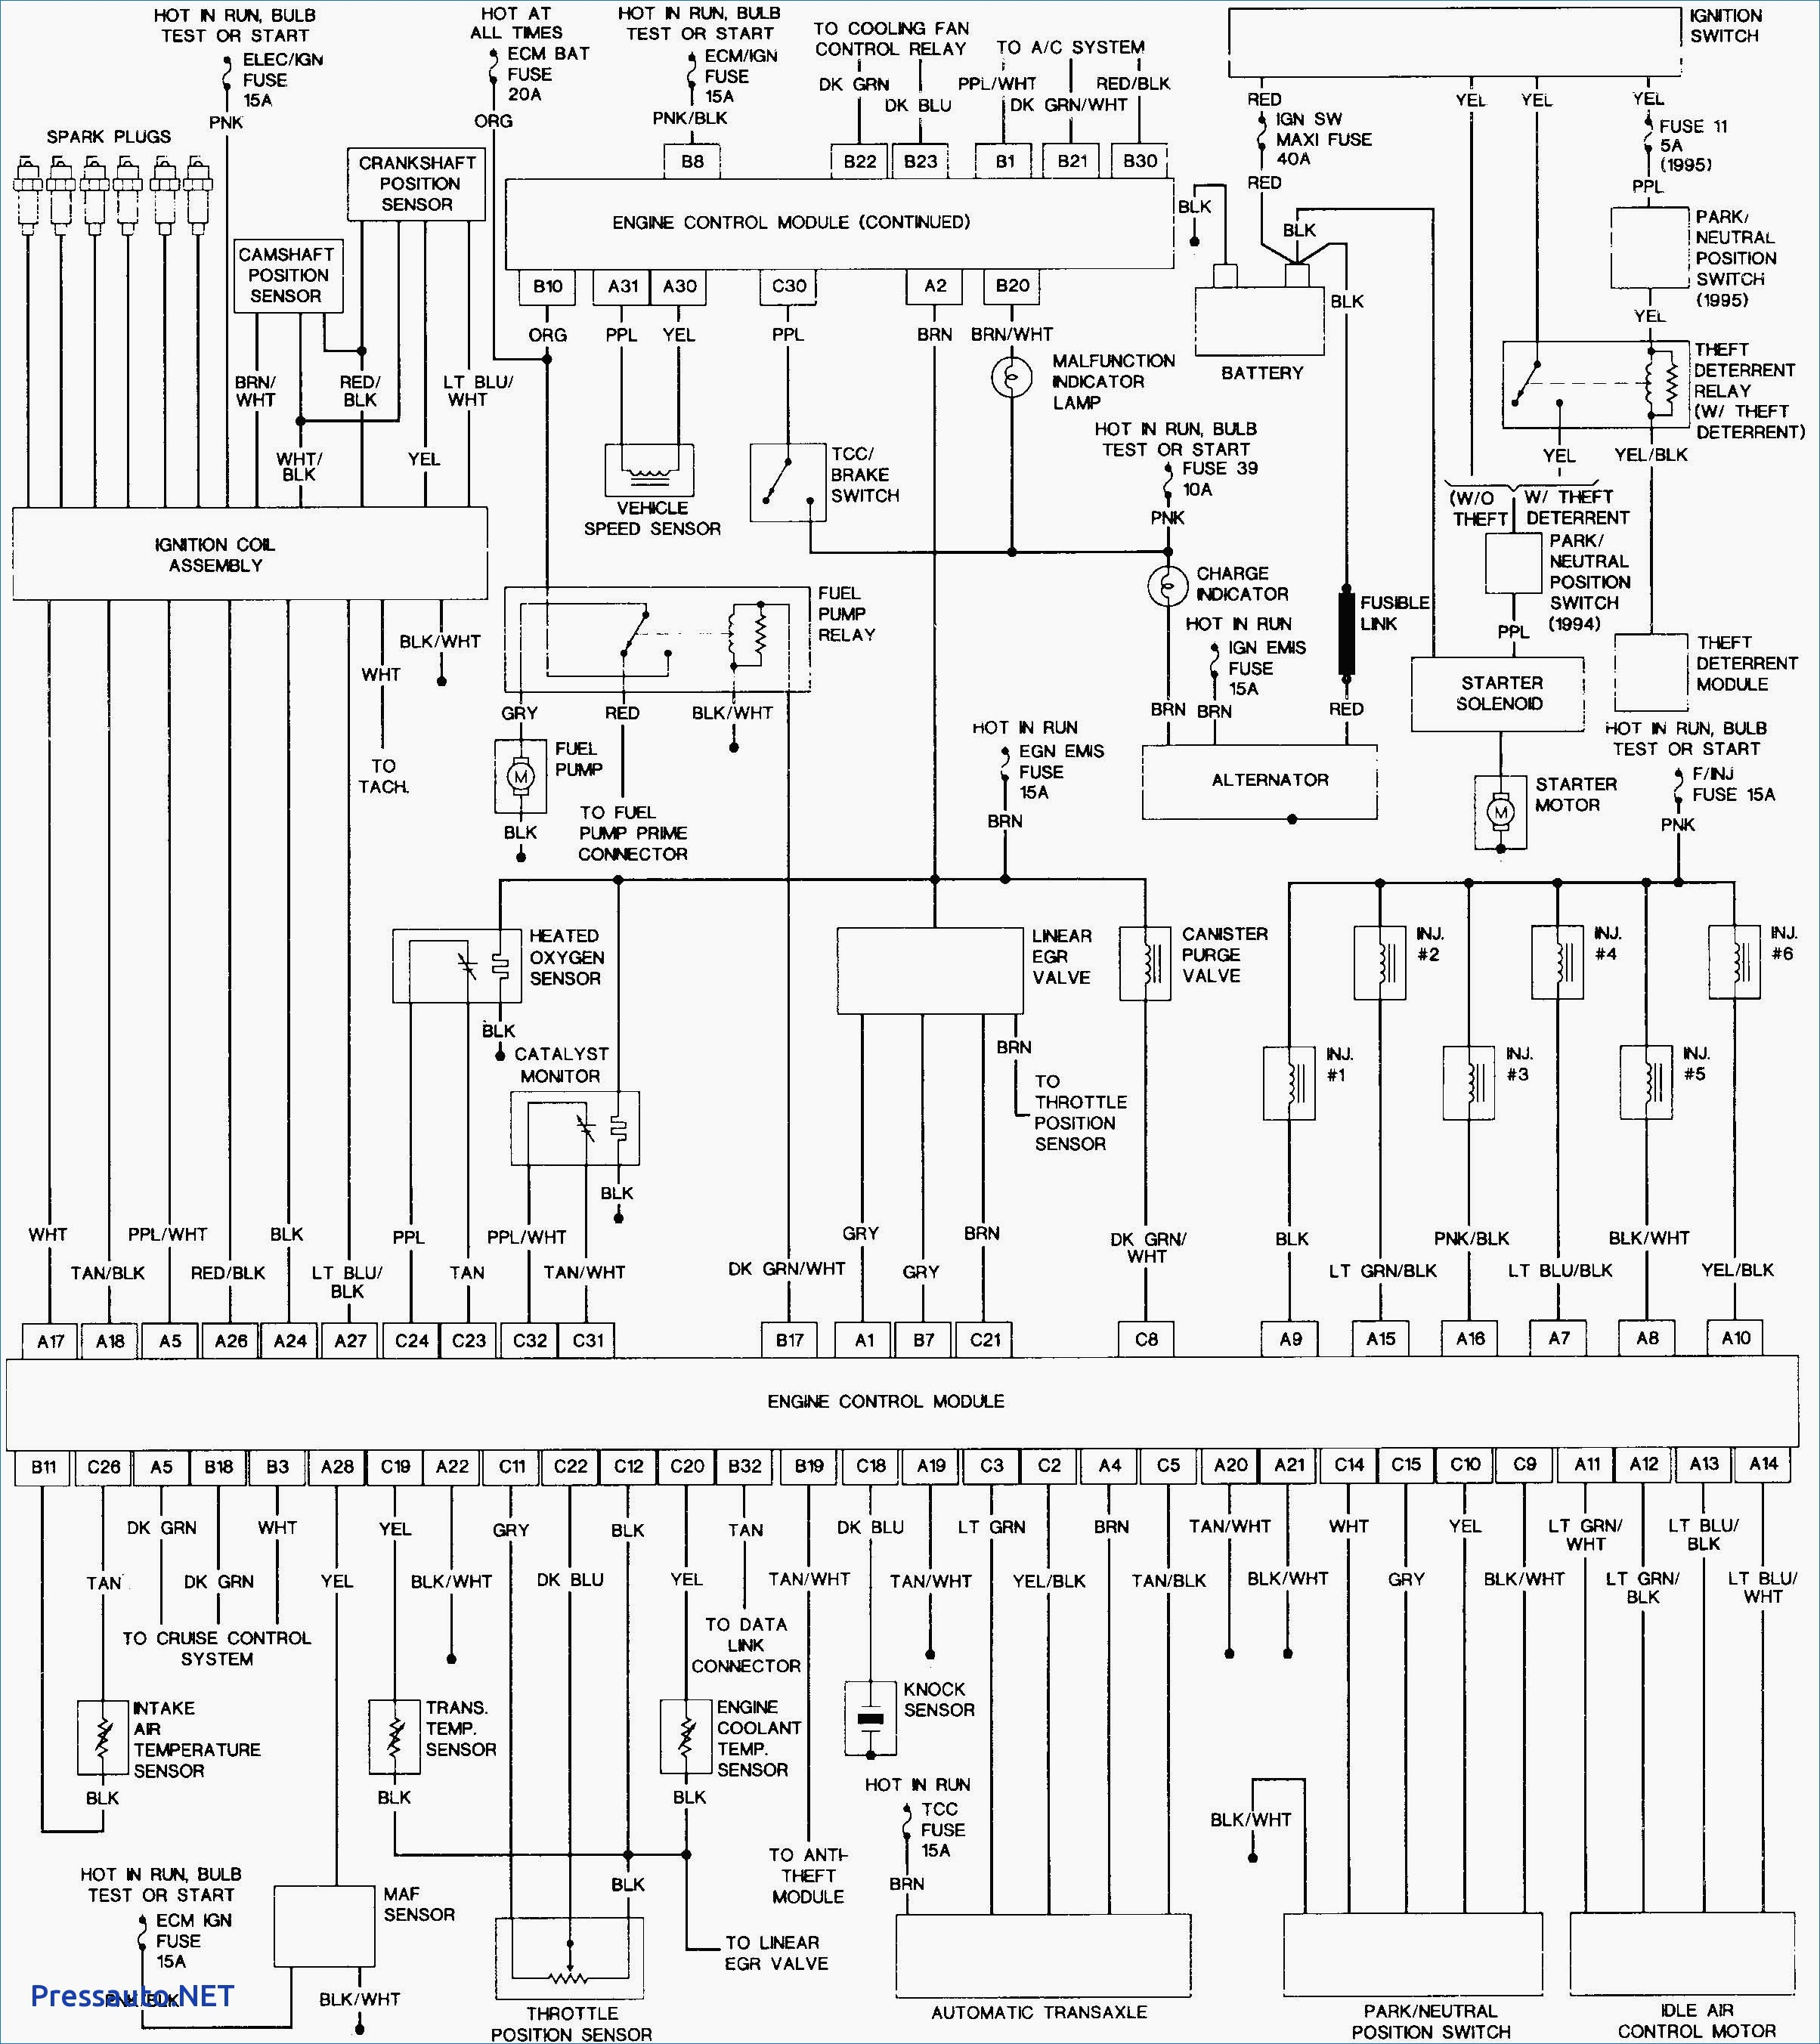 1979 corvette headlight wiring diagram huskee lawn tractor parts my